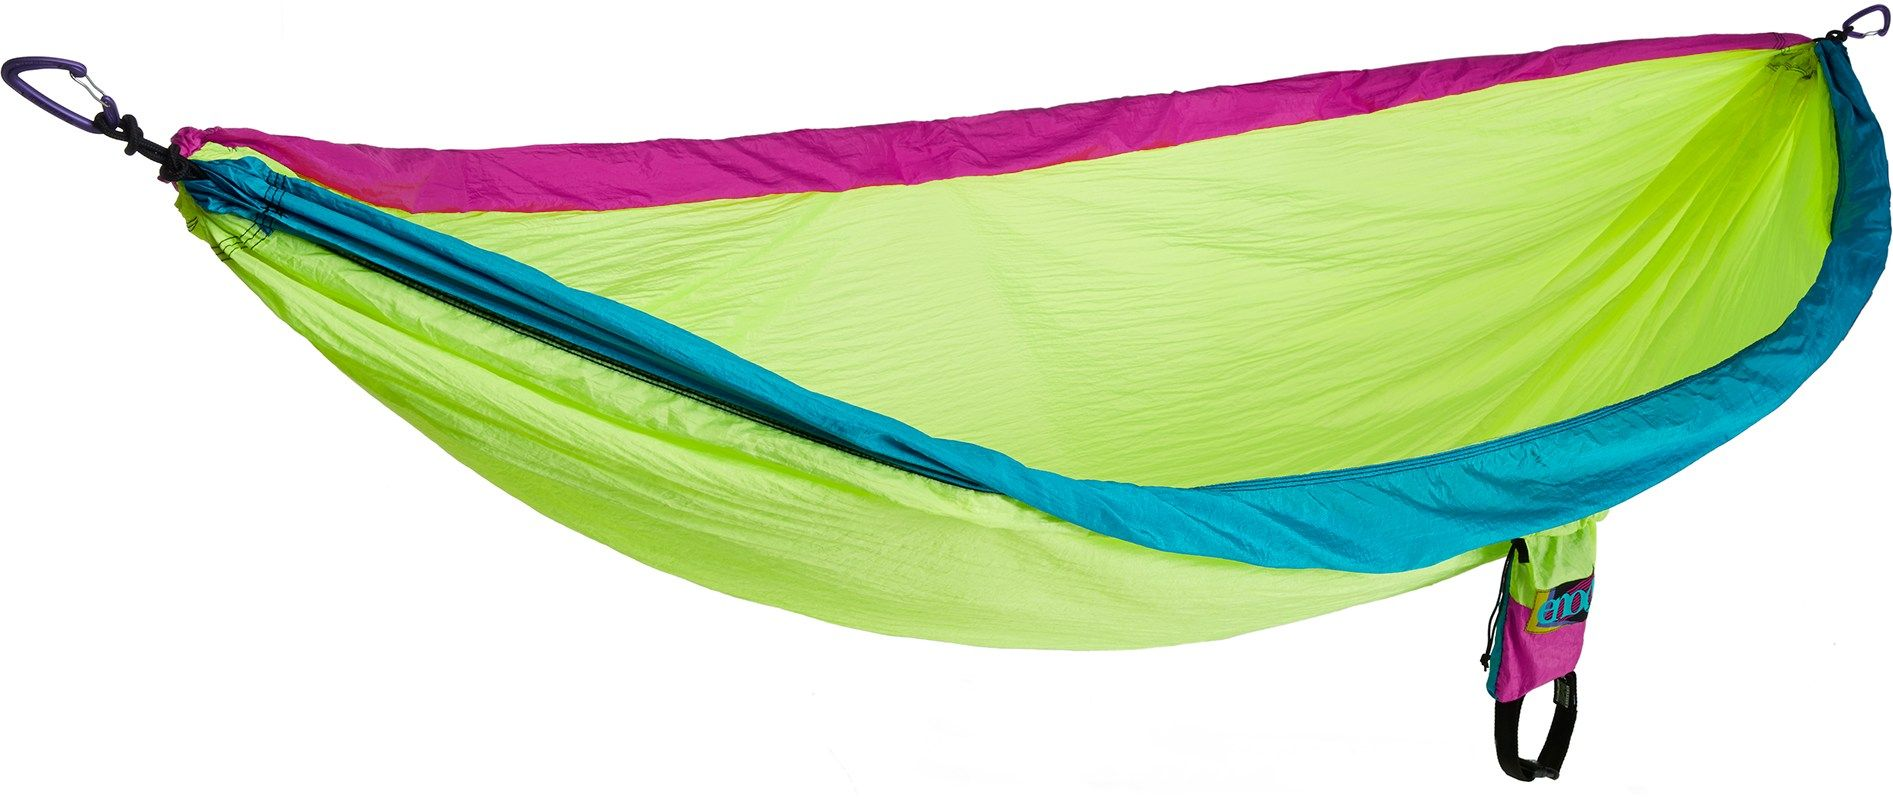 with room for the eno doublenest hammock is great for family adventures to your favorite lakeside campsite gearmarket rebates from rei  eno doublenest hammock   rei     camping backpacking   pinterest      rh   pinterest